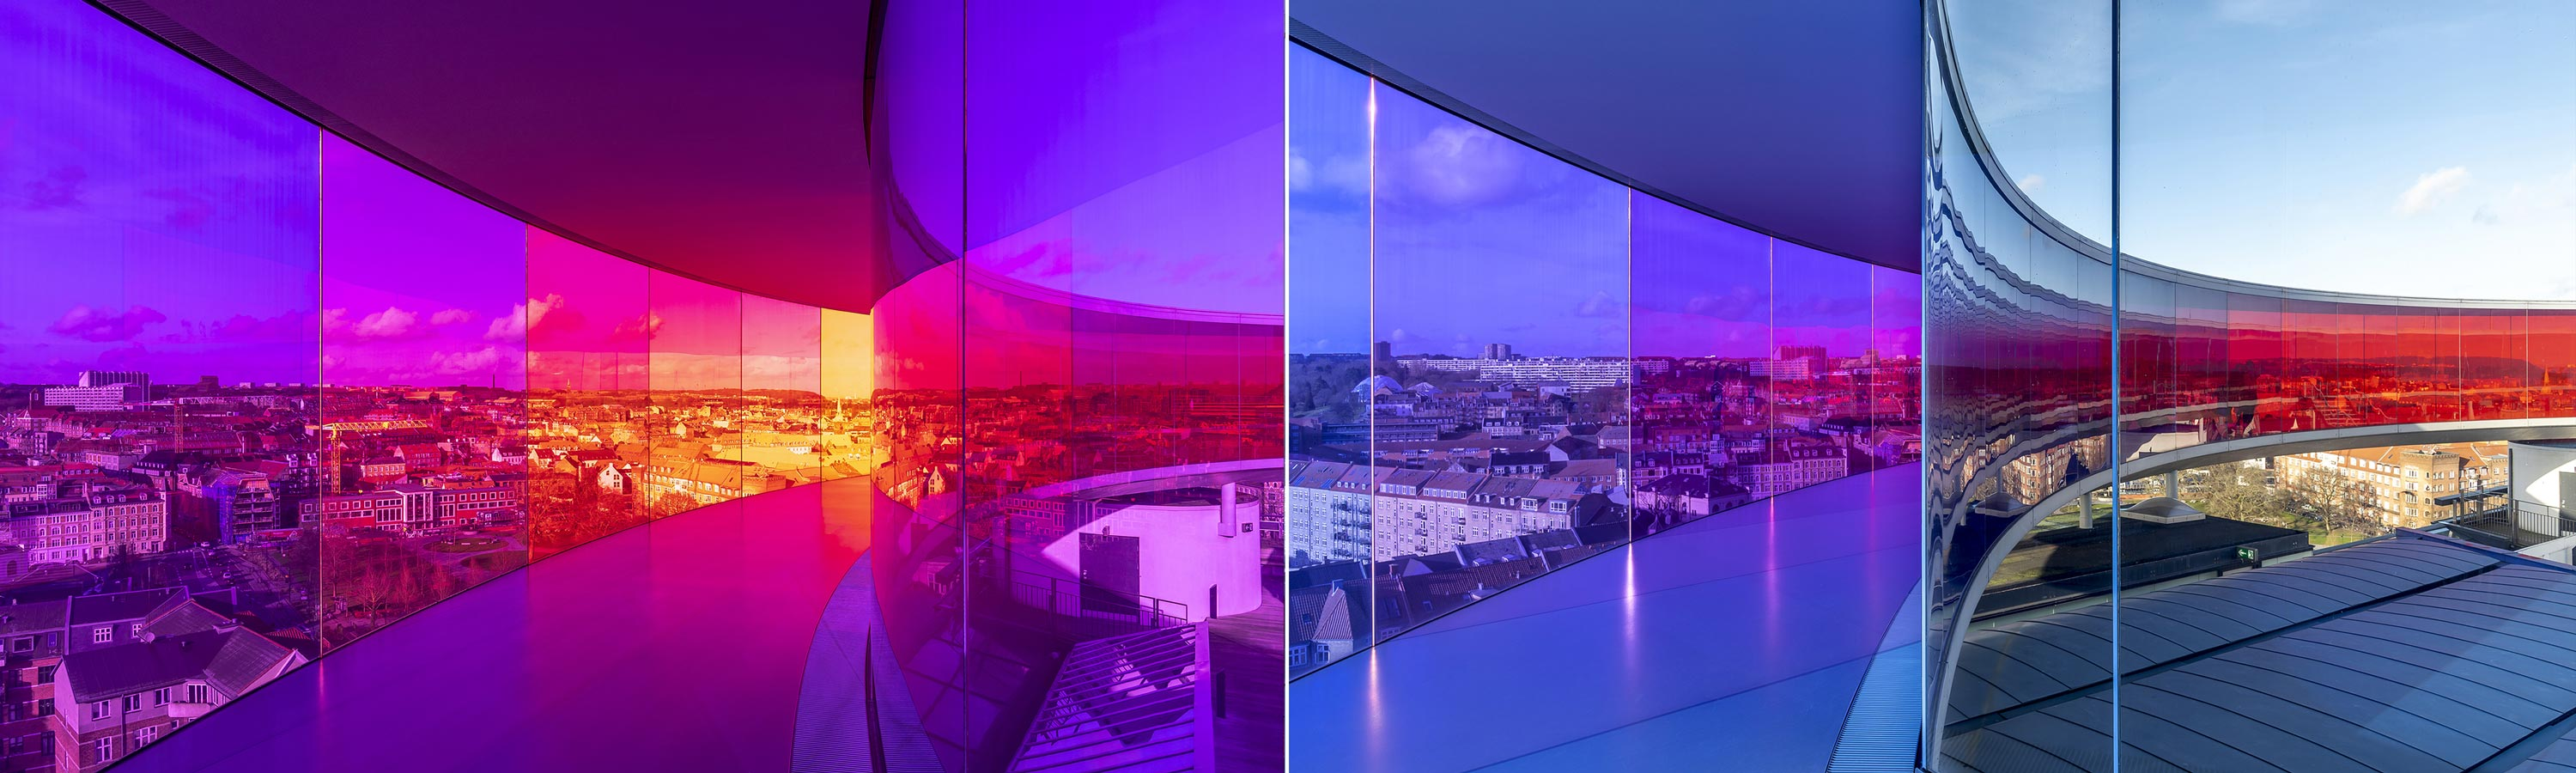 Your Rainbow Panorama by Olafur Eliasson photographed by Colin Walton at WaltonCreative